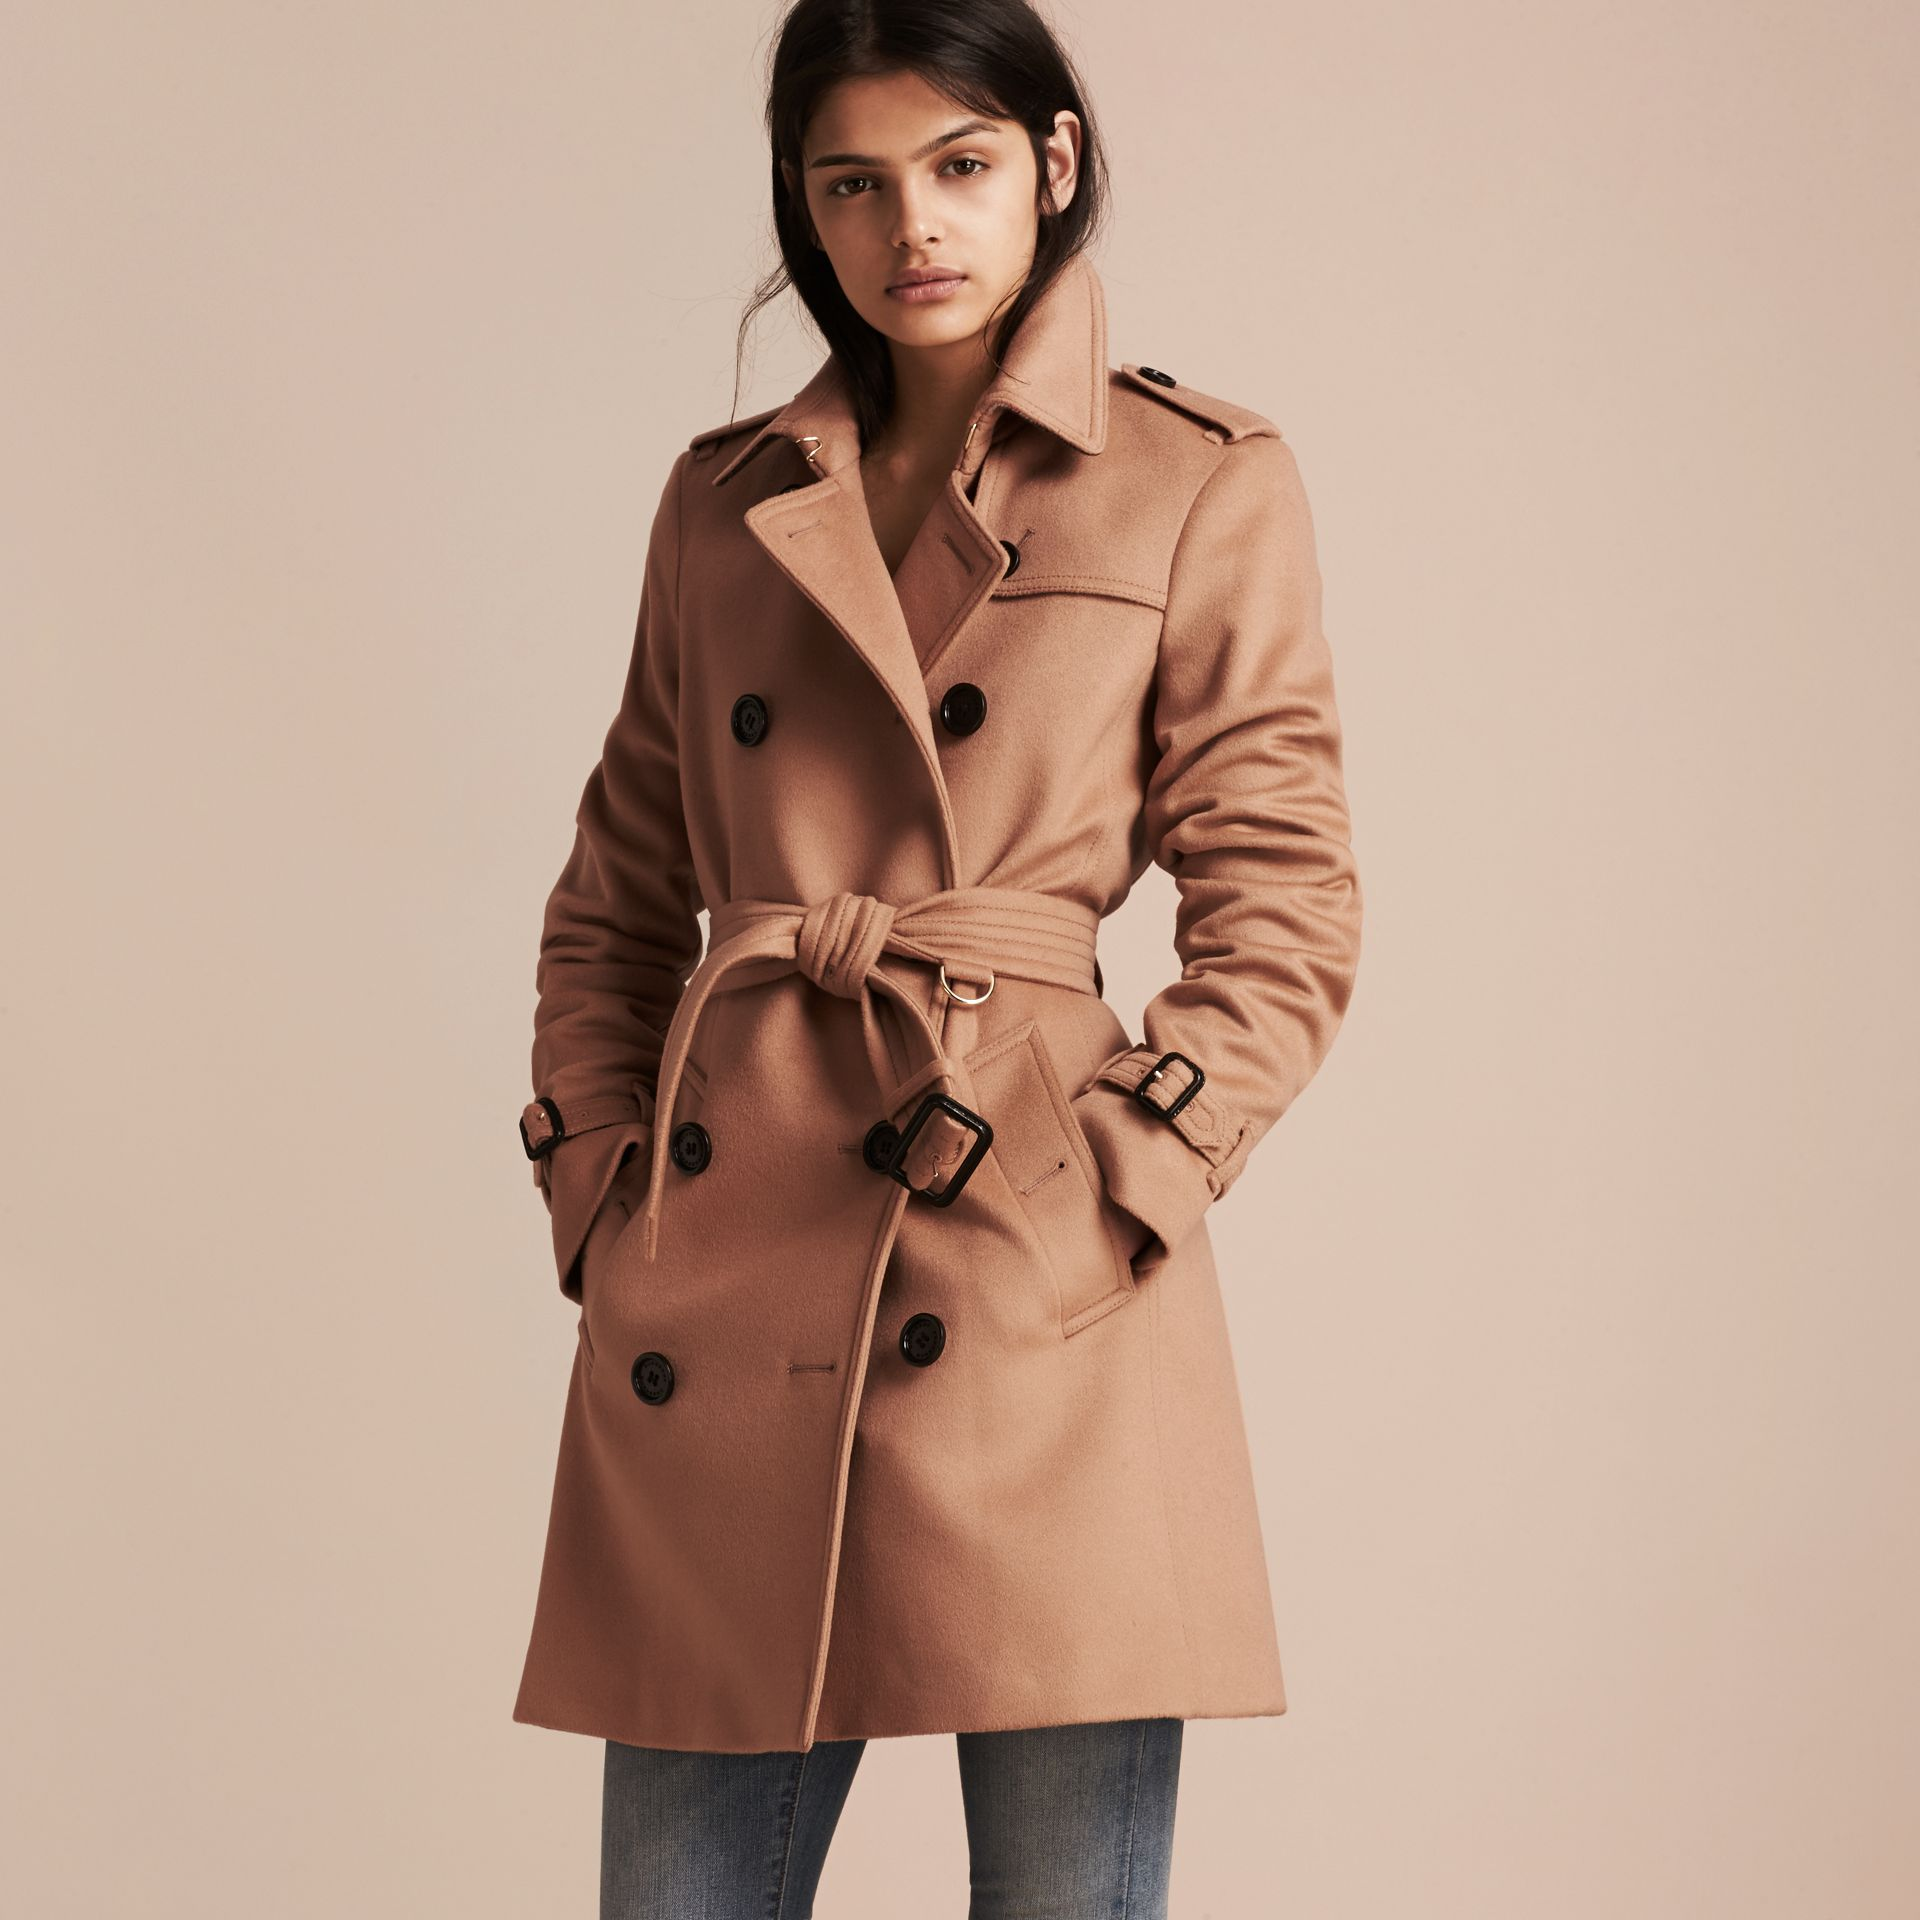 Wool Cashmere Trench Coat in Camel - Women | Burberry Canada - gallery image 7